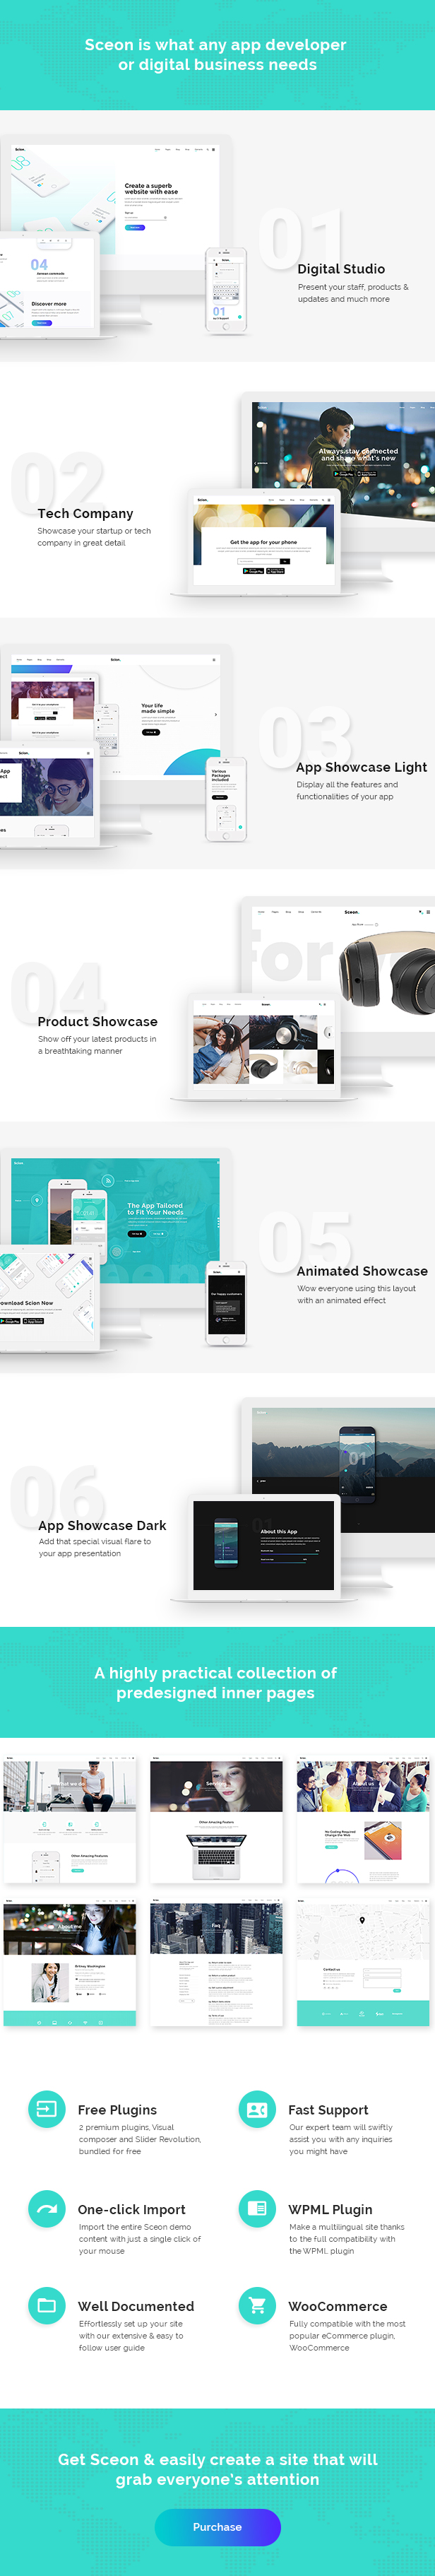 Sceon - App Landing Page & Startup Theme free download Sceon - App Landing Page & Startup Theme coupon Sceon - App Landing Page & Startup Theme nulled Sceon - App Landing Page & Startup Theme review Sceon - App Landing Page & Startup Theme